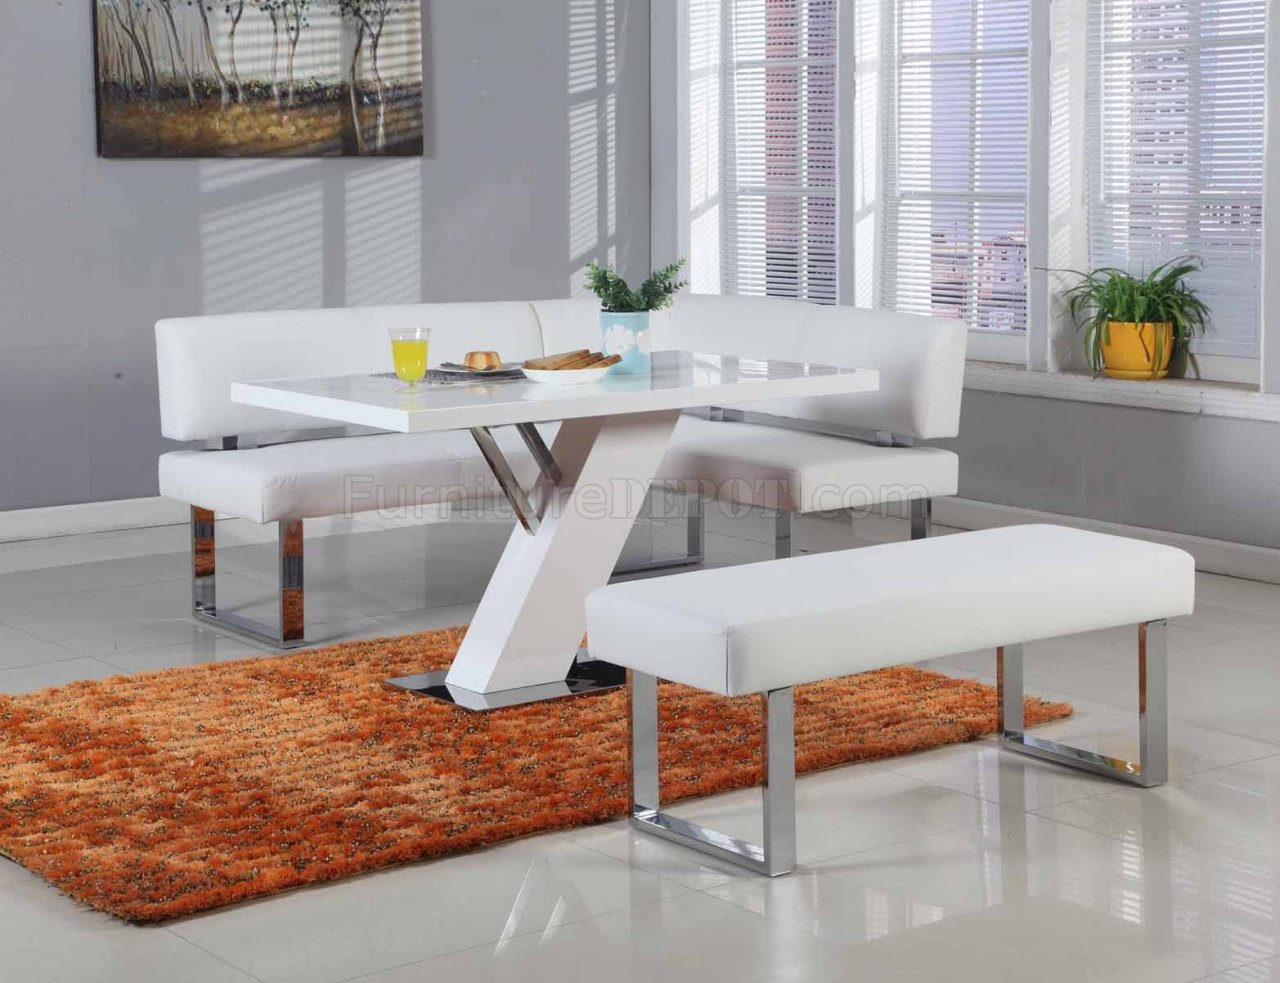 Linden Dining Table Amp Nook Set In White By Chintaly